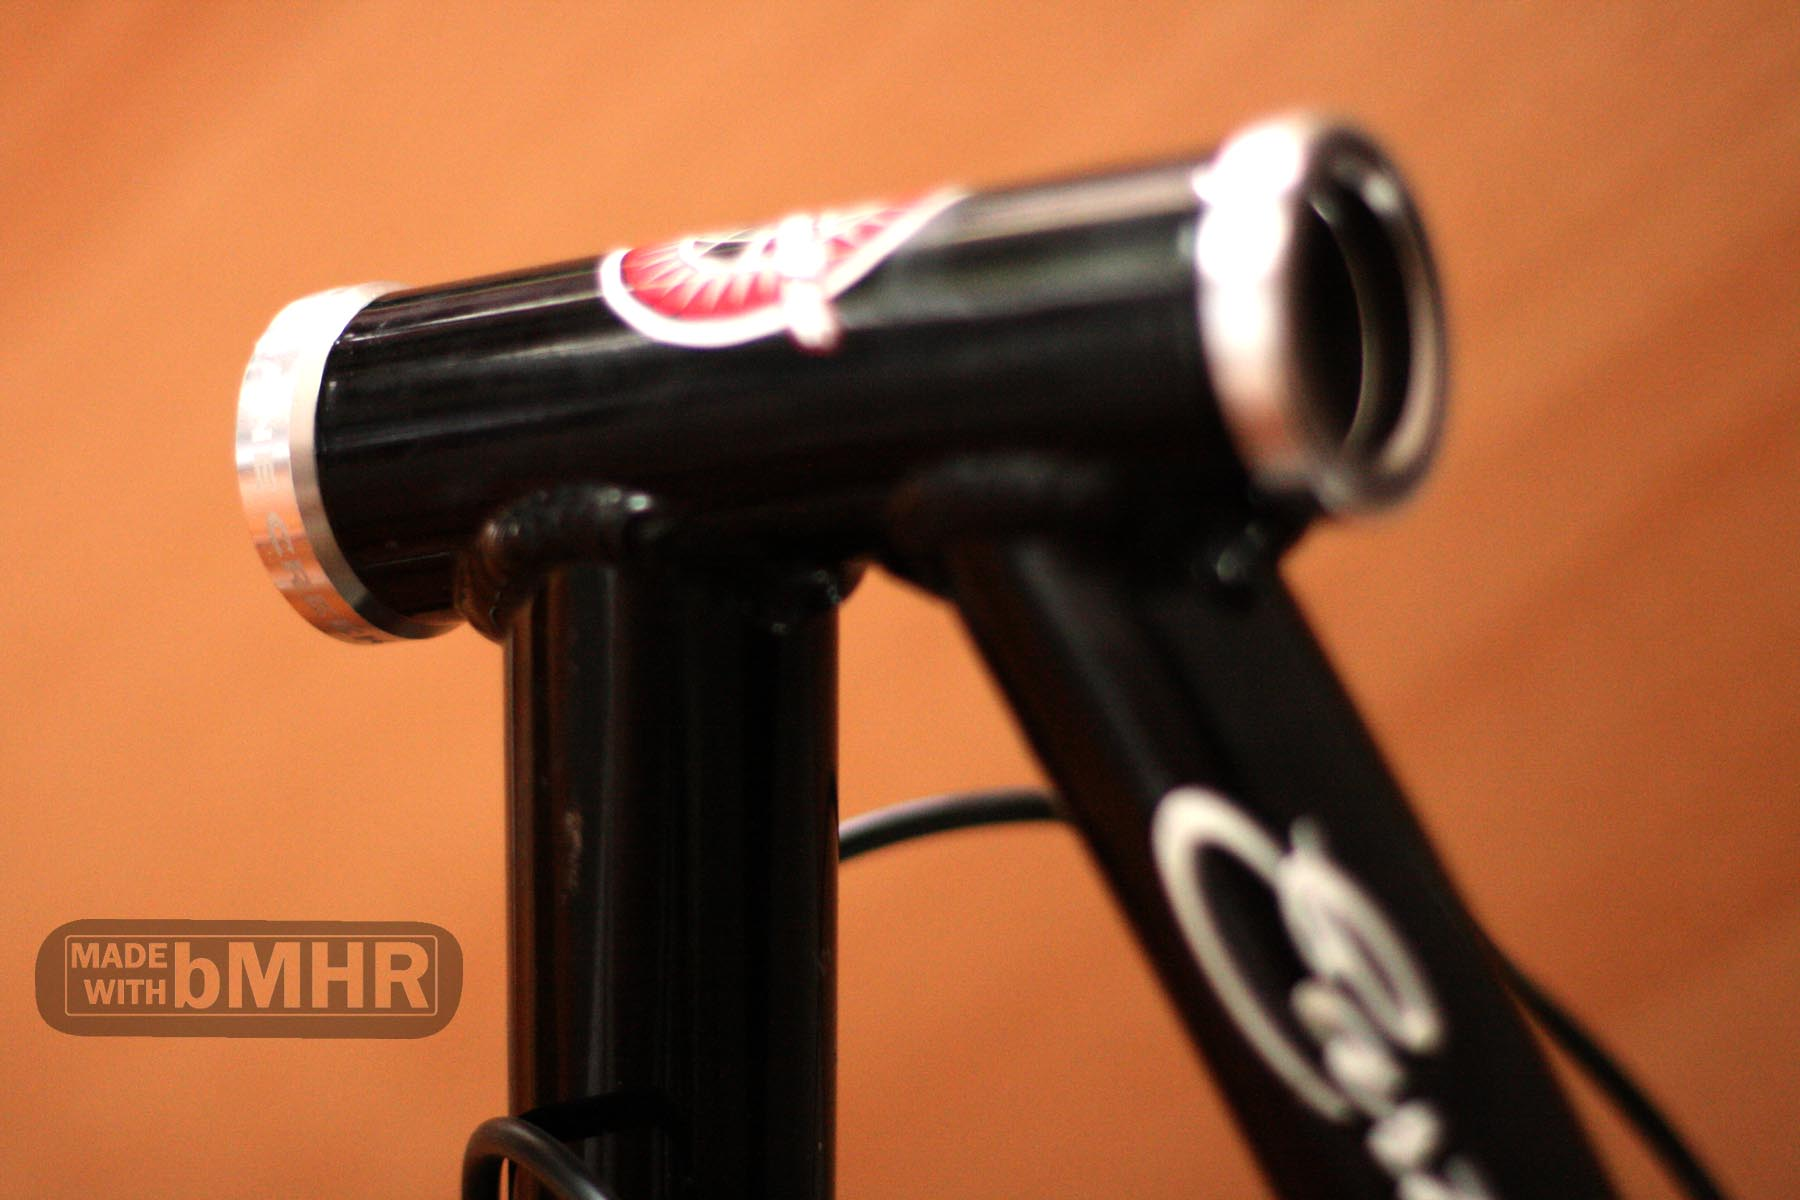 Some detail of the new Cane Creek S2 headset.